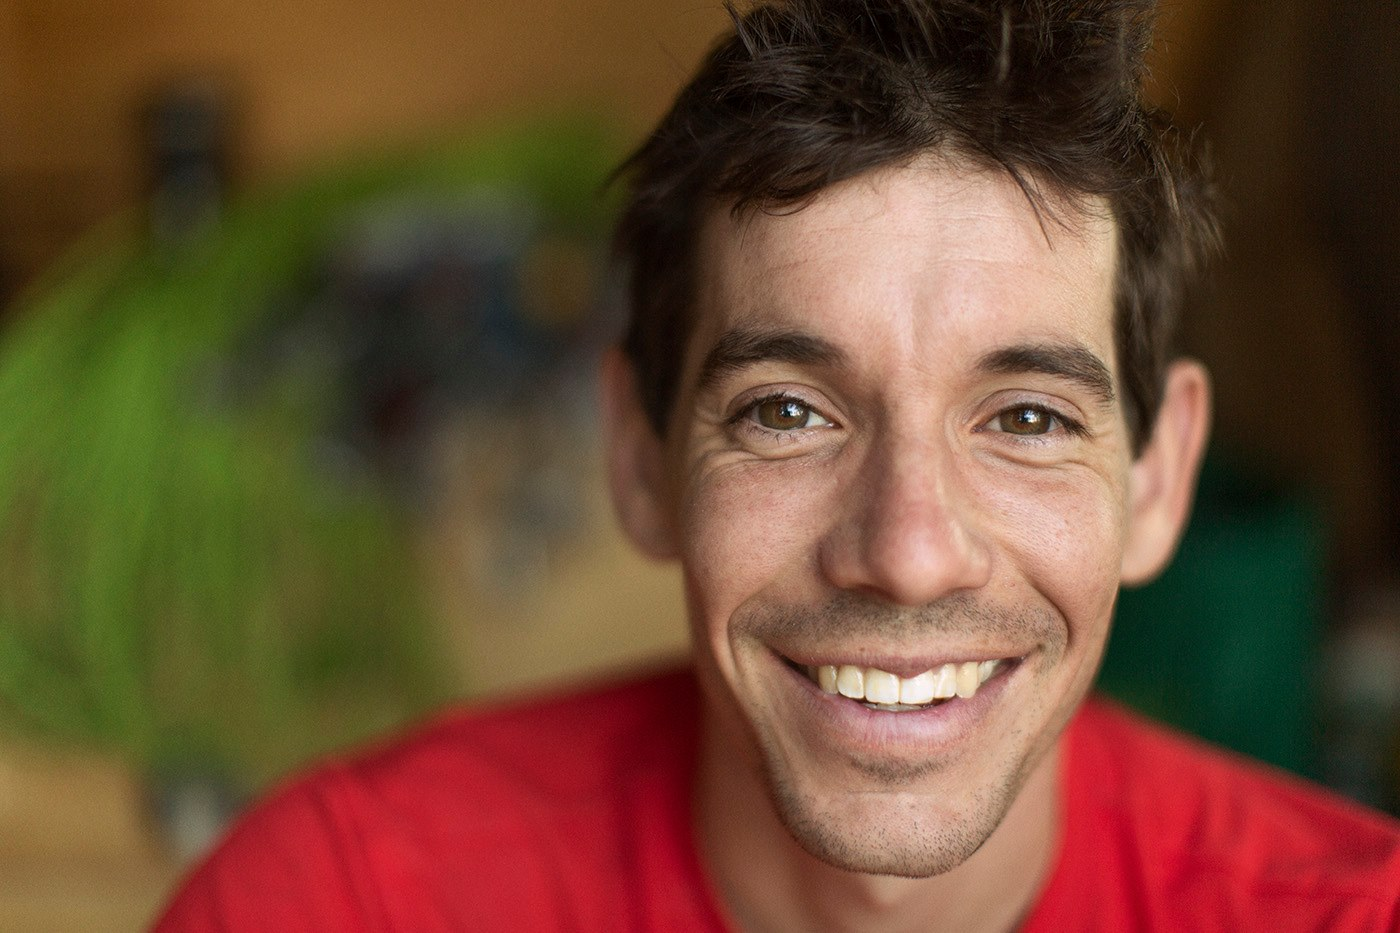 Alex Honnold - Professional climber, Founder of the Honnold Foundation, world record holder.